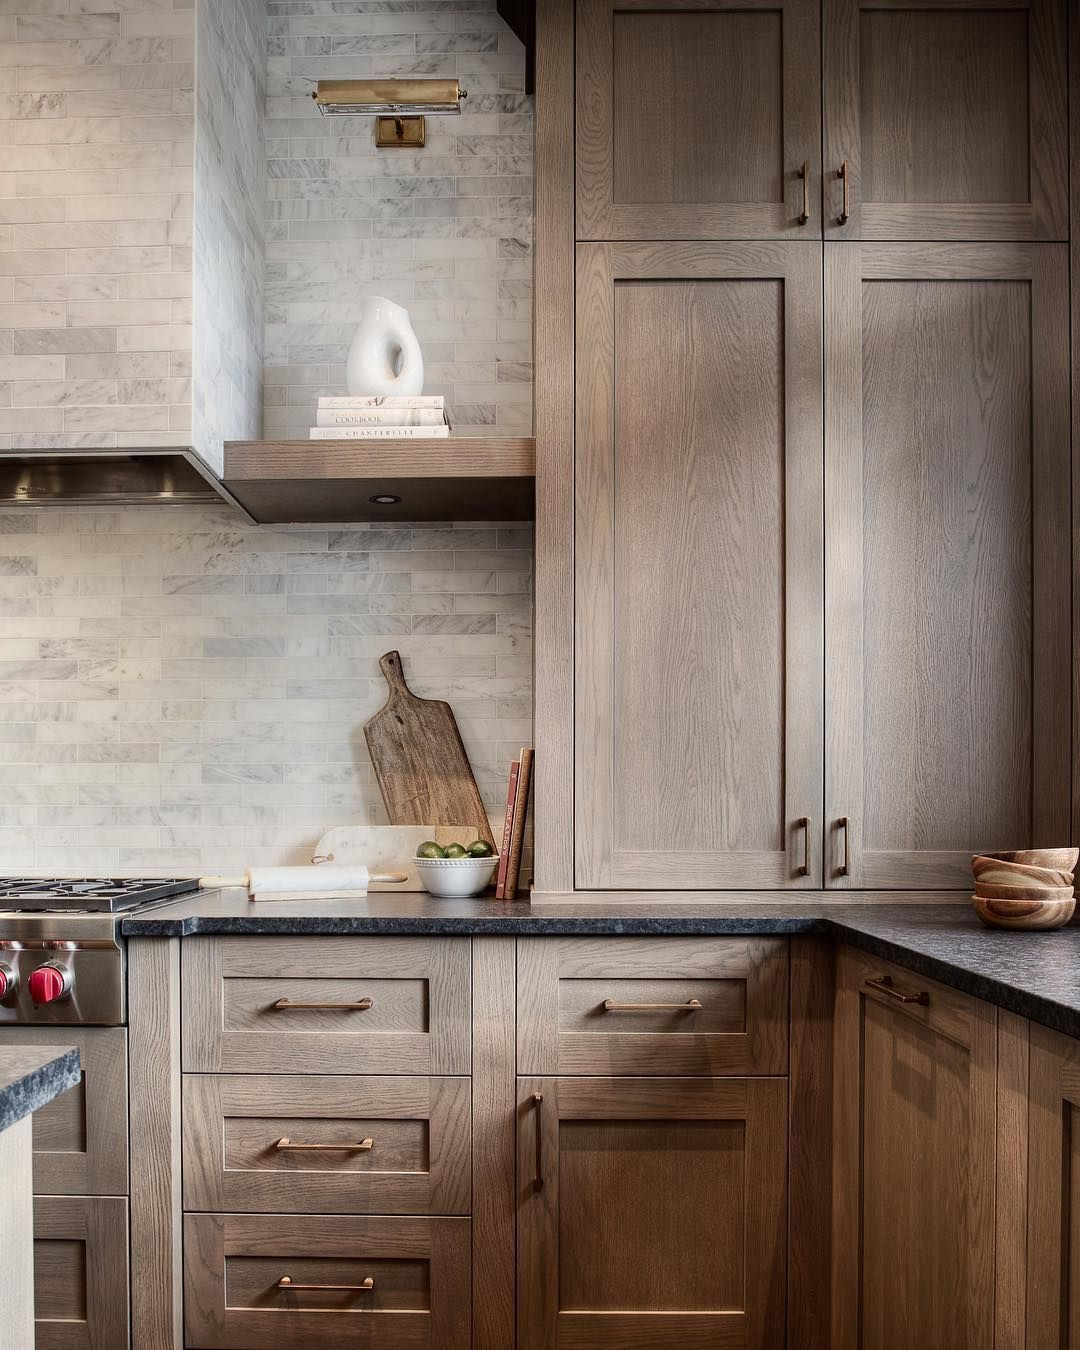 Pin By Tanya Neeson The Kitchen On Kitchen Remodel Countertops Kitchen Cabinet Styles Rustic Kitchen Cabinets Black Kitchen Countertops